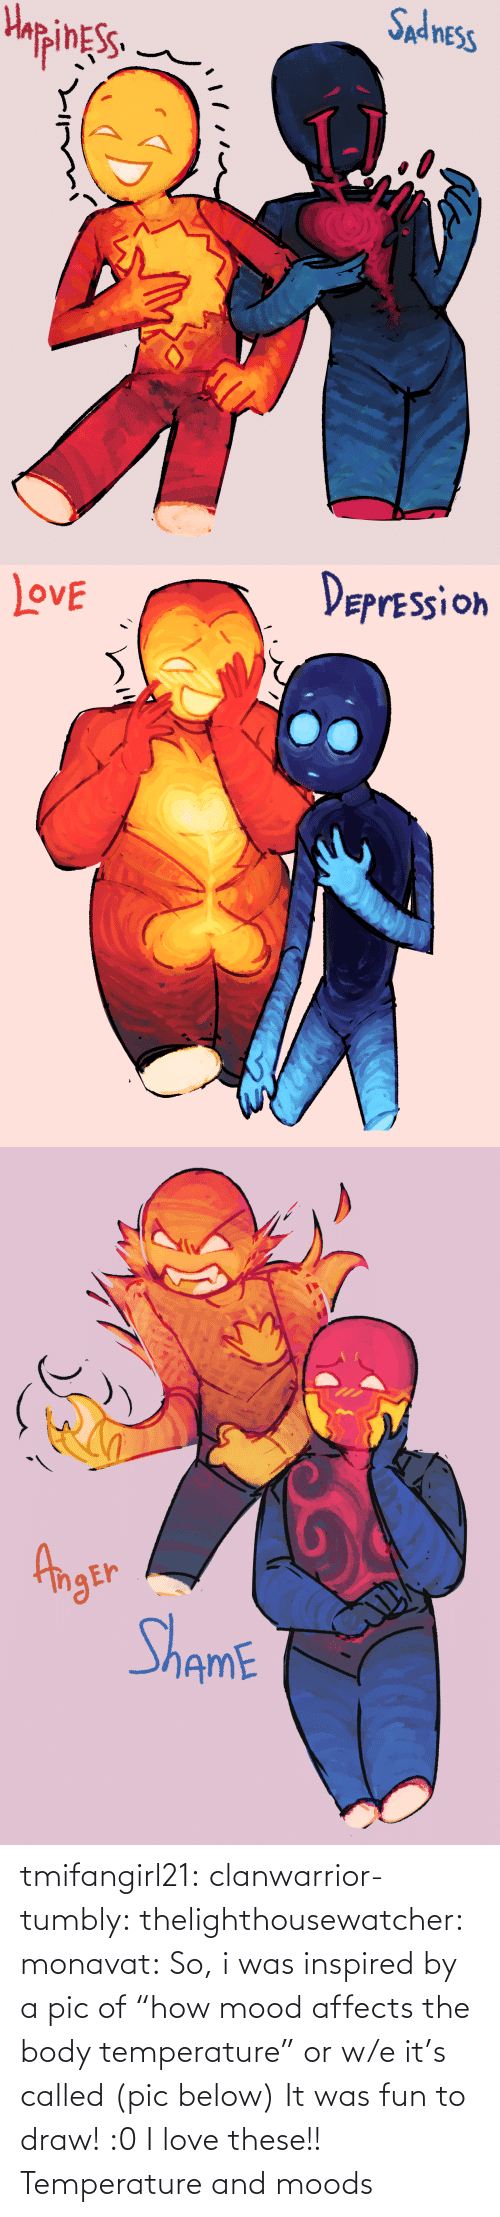 """Moods: tmifangirl21: clanwarrior-tumbly:  thelighthousewatcher:   monavat:    So, i was inspired by a pic of """"how mood affects the body temperature"""" or w/e it's called (pic below) It was fun to draw!   :0   I love these!!    Temperature and moods"""